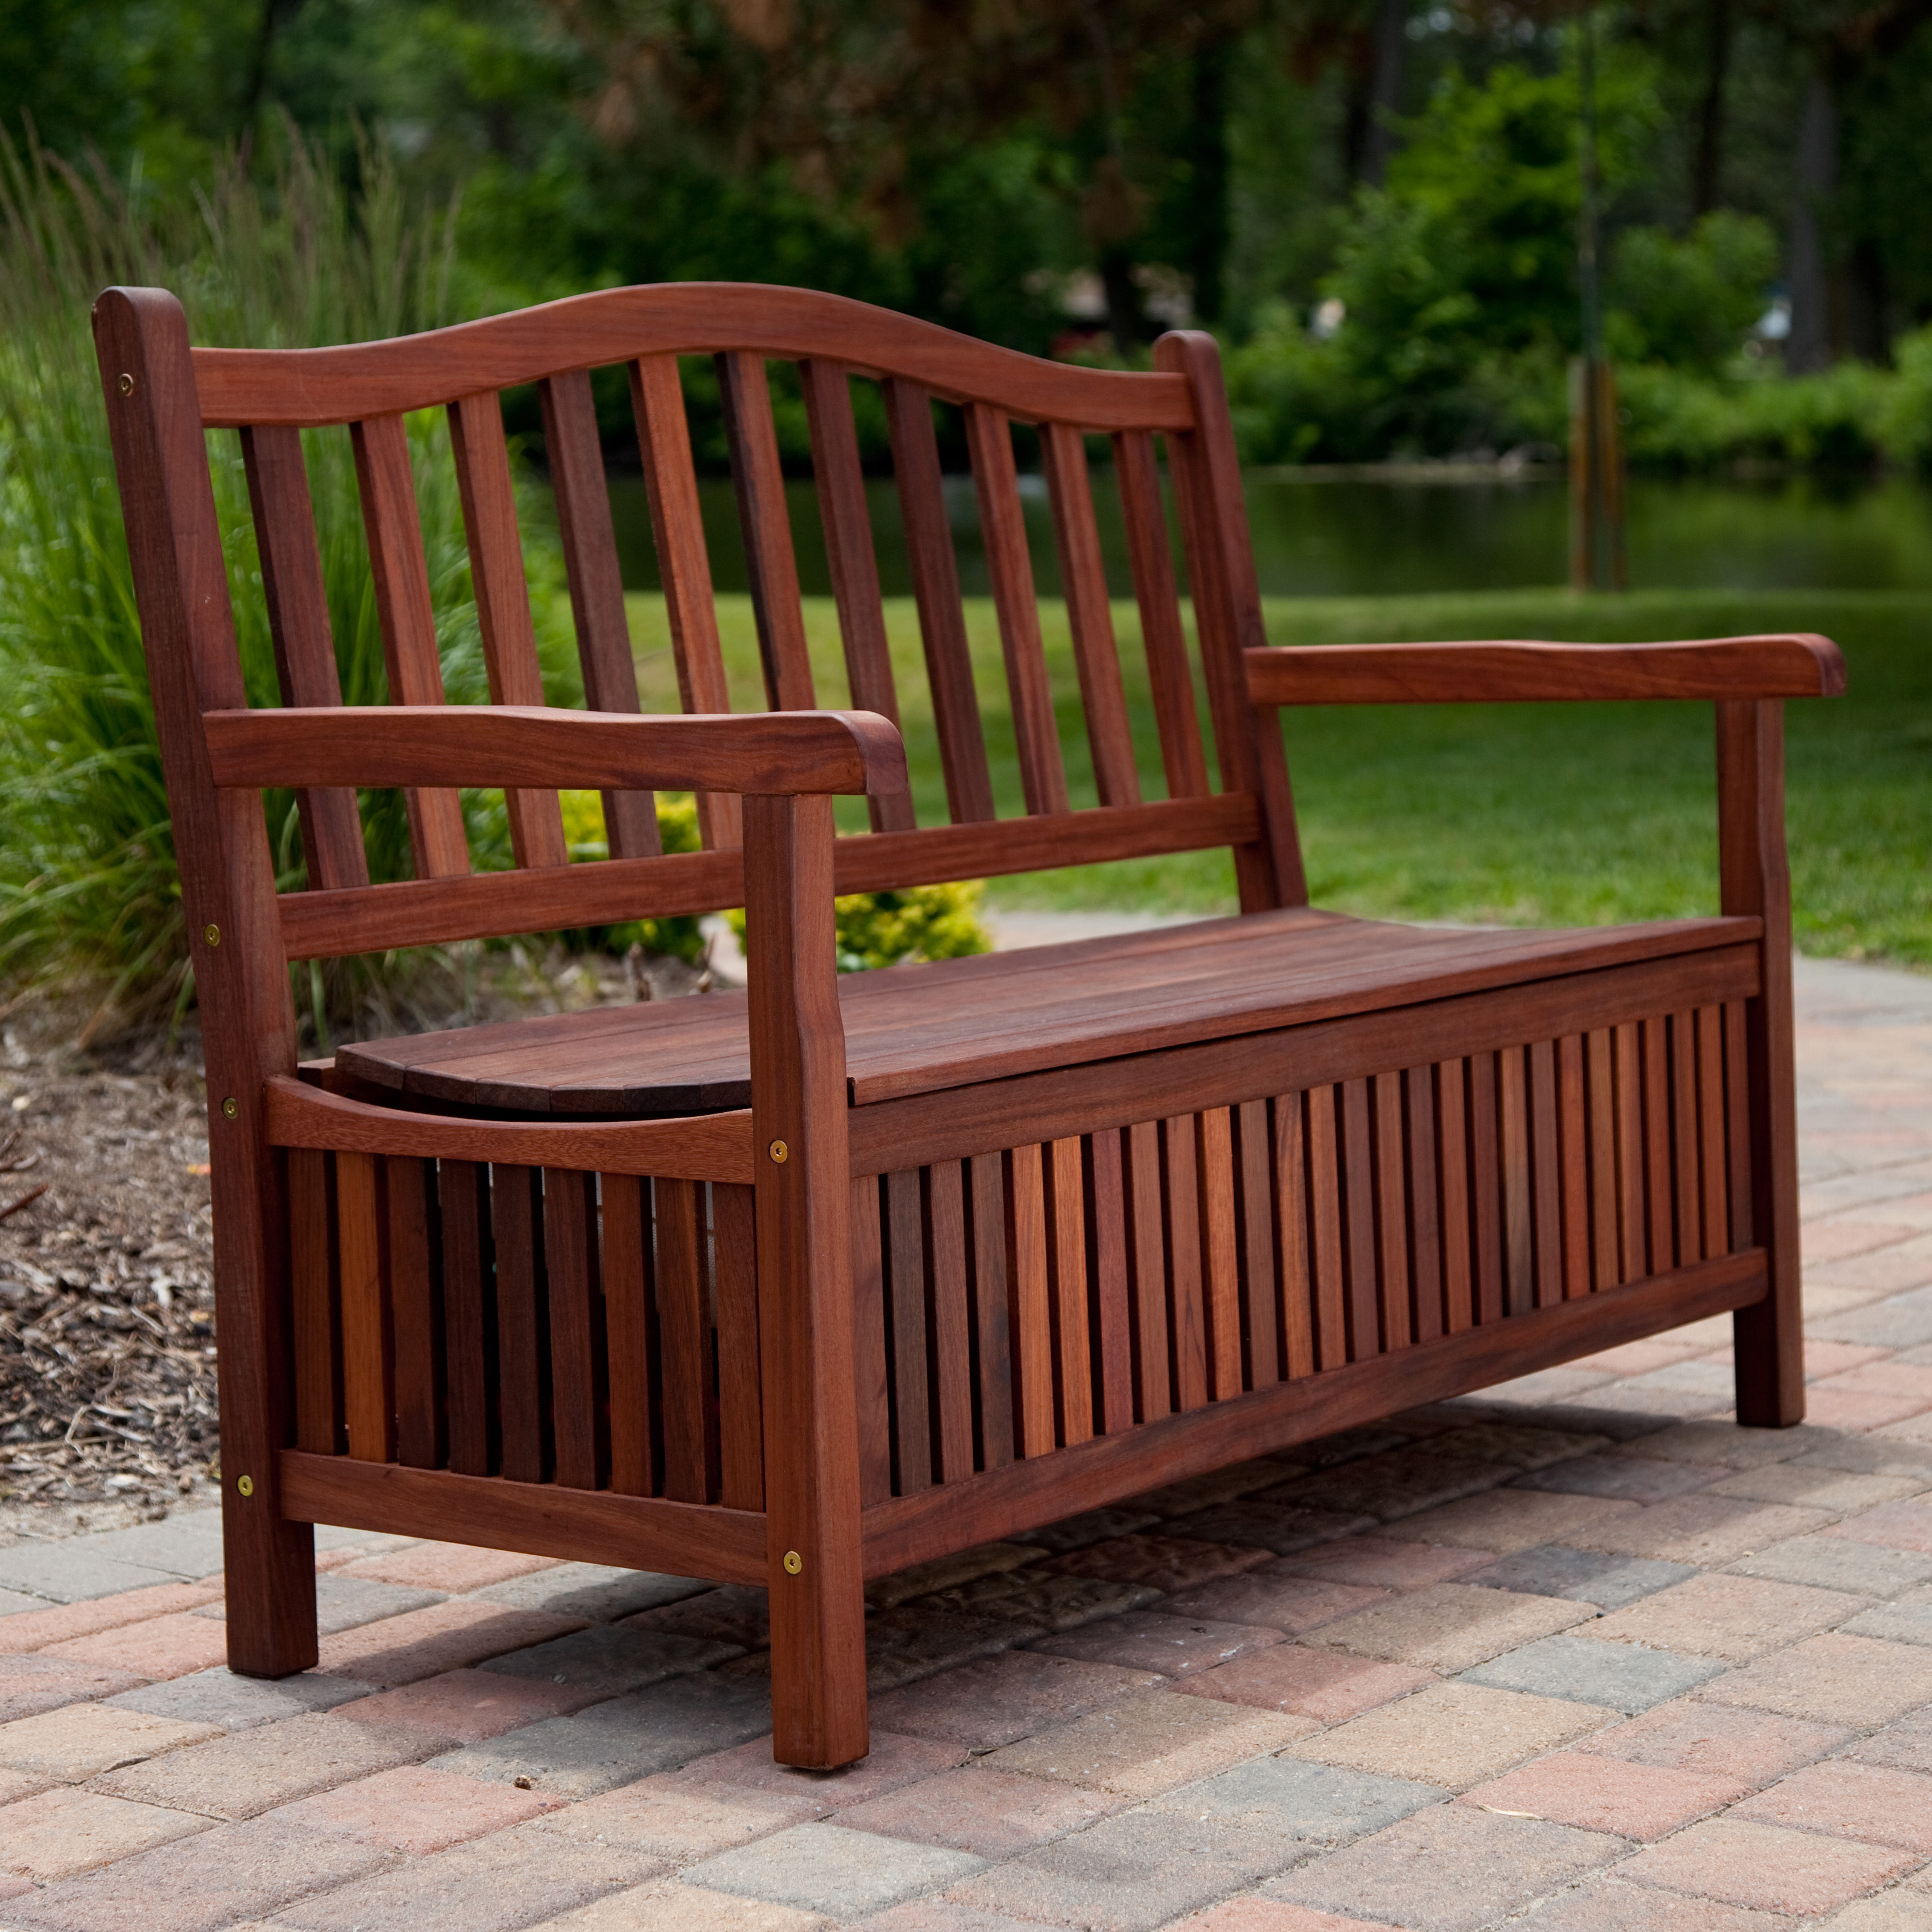 Outdoor wooden benches - Suncast Ultimate 50 Gallon Resin Patio Storage Bench Pb6700 Outdoor Benches At Hayneedle